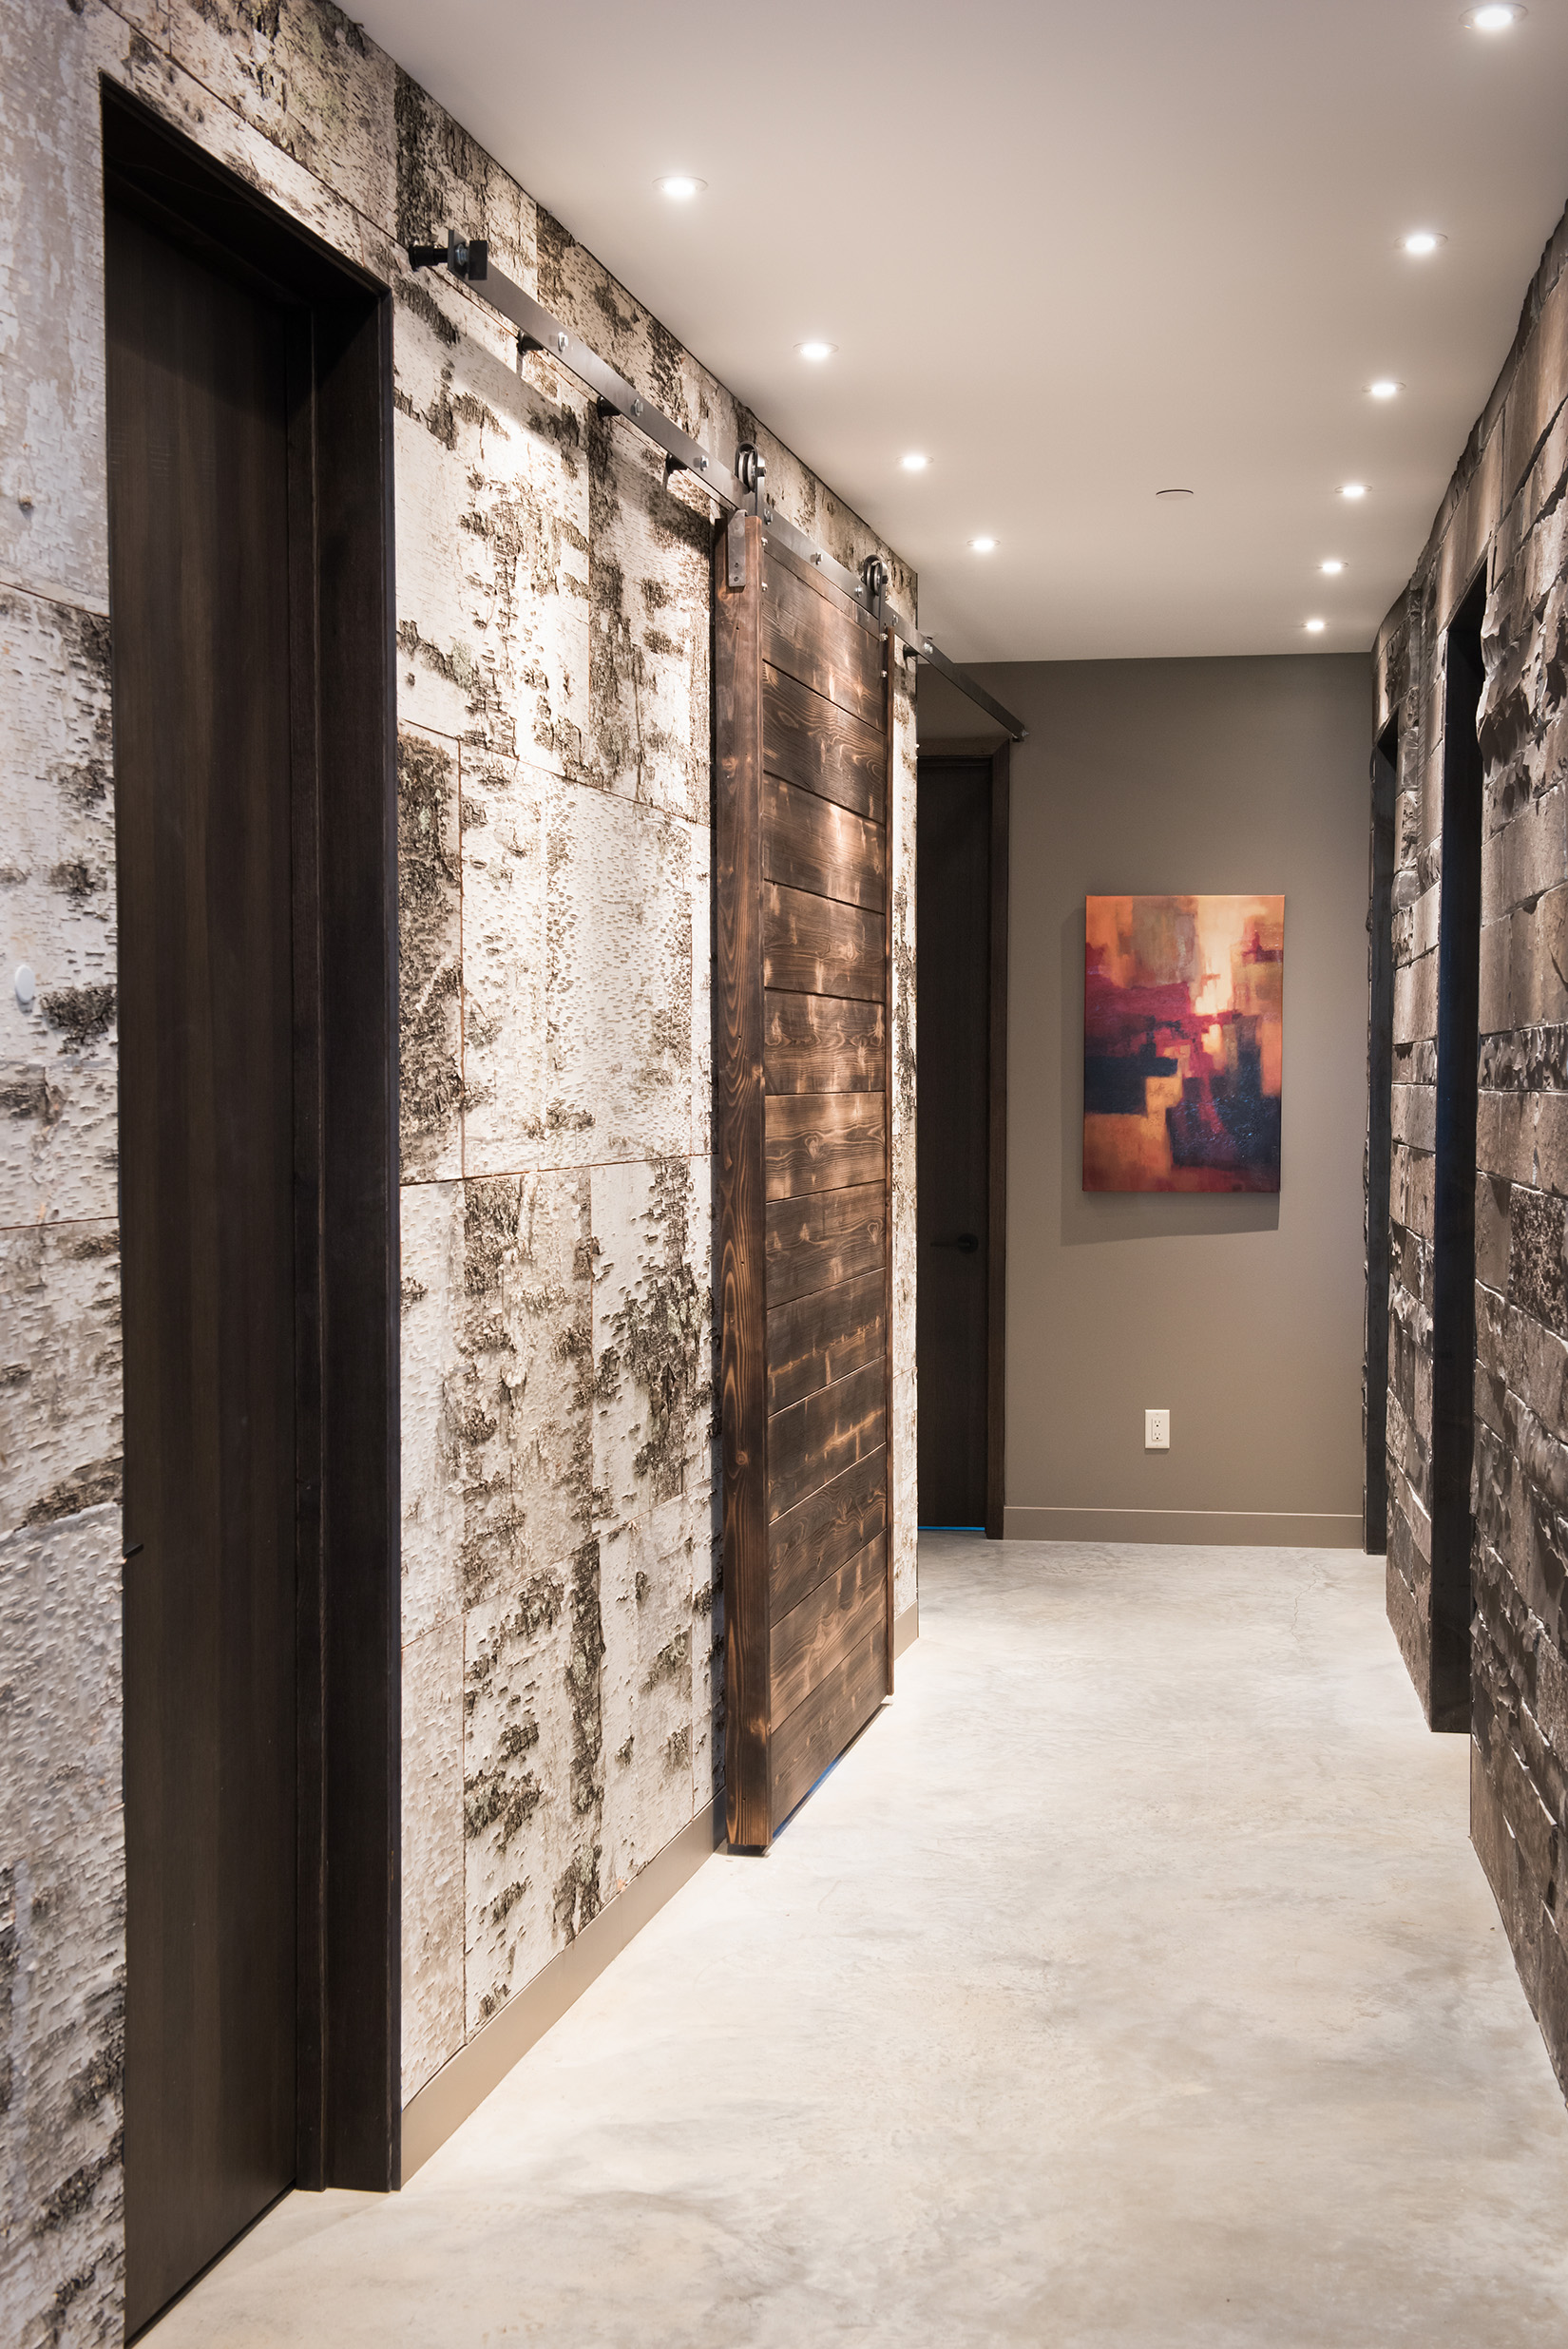 The perfect mixture or birch wallpaper, timber, and stone.